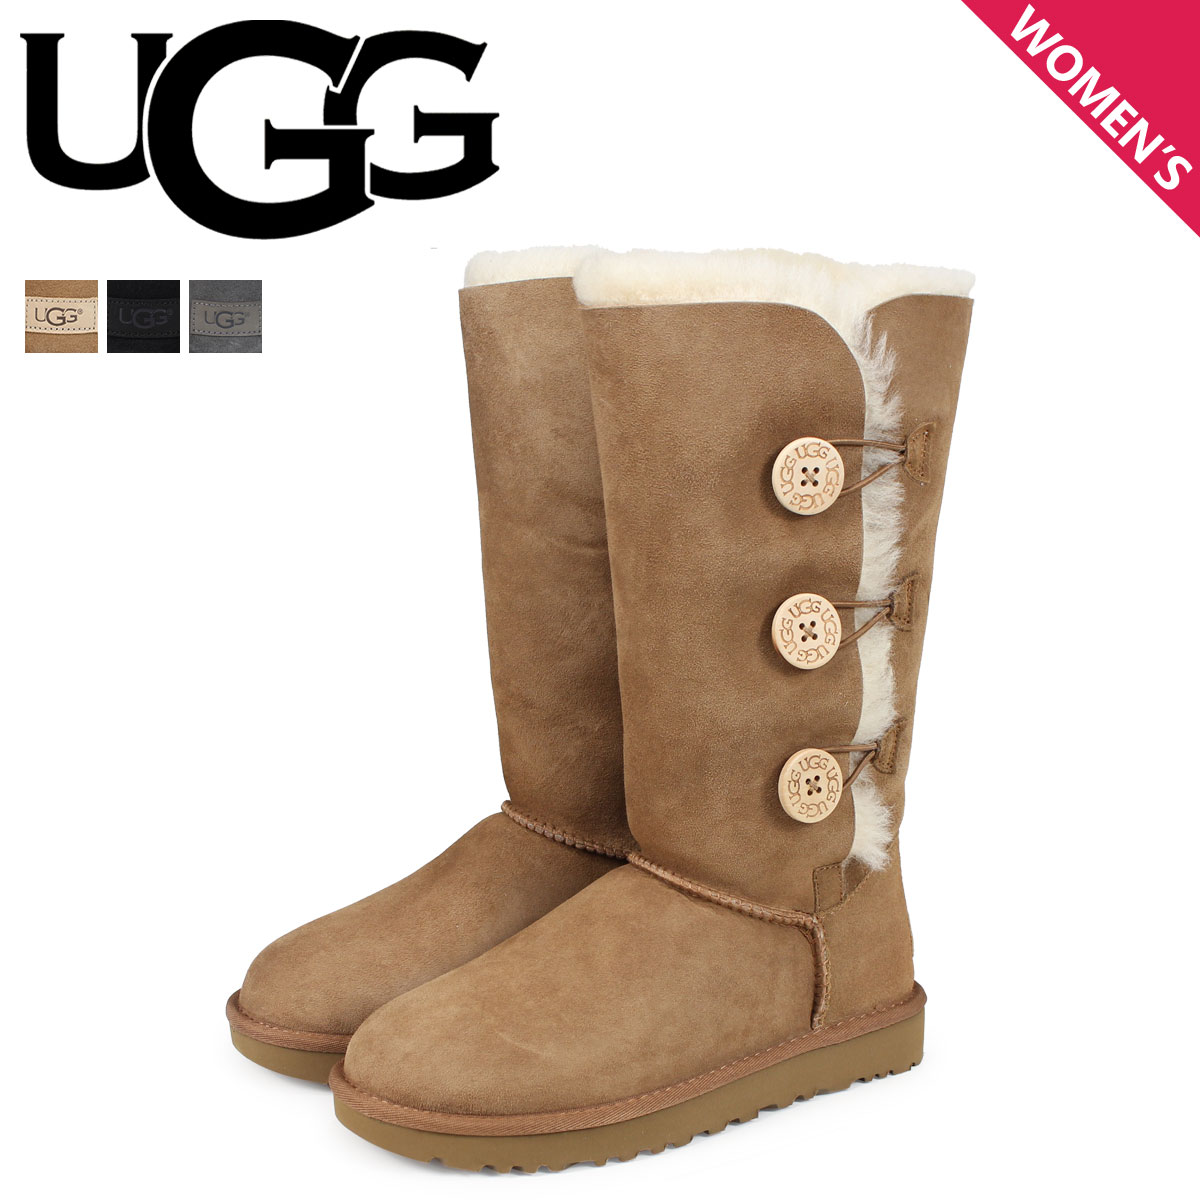 UGG アグ ムートンブーツ ベイリーボタン 2 レディース WOMENS BAILEY BUTTON TRIPLET II 1016227